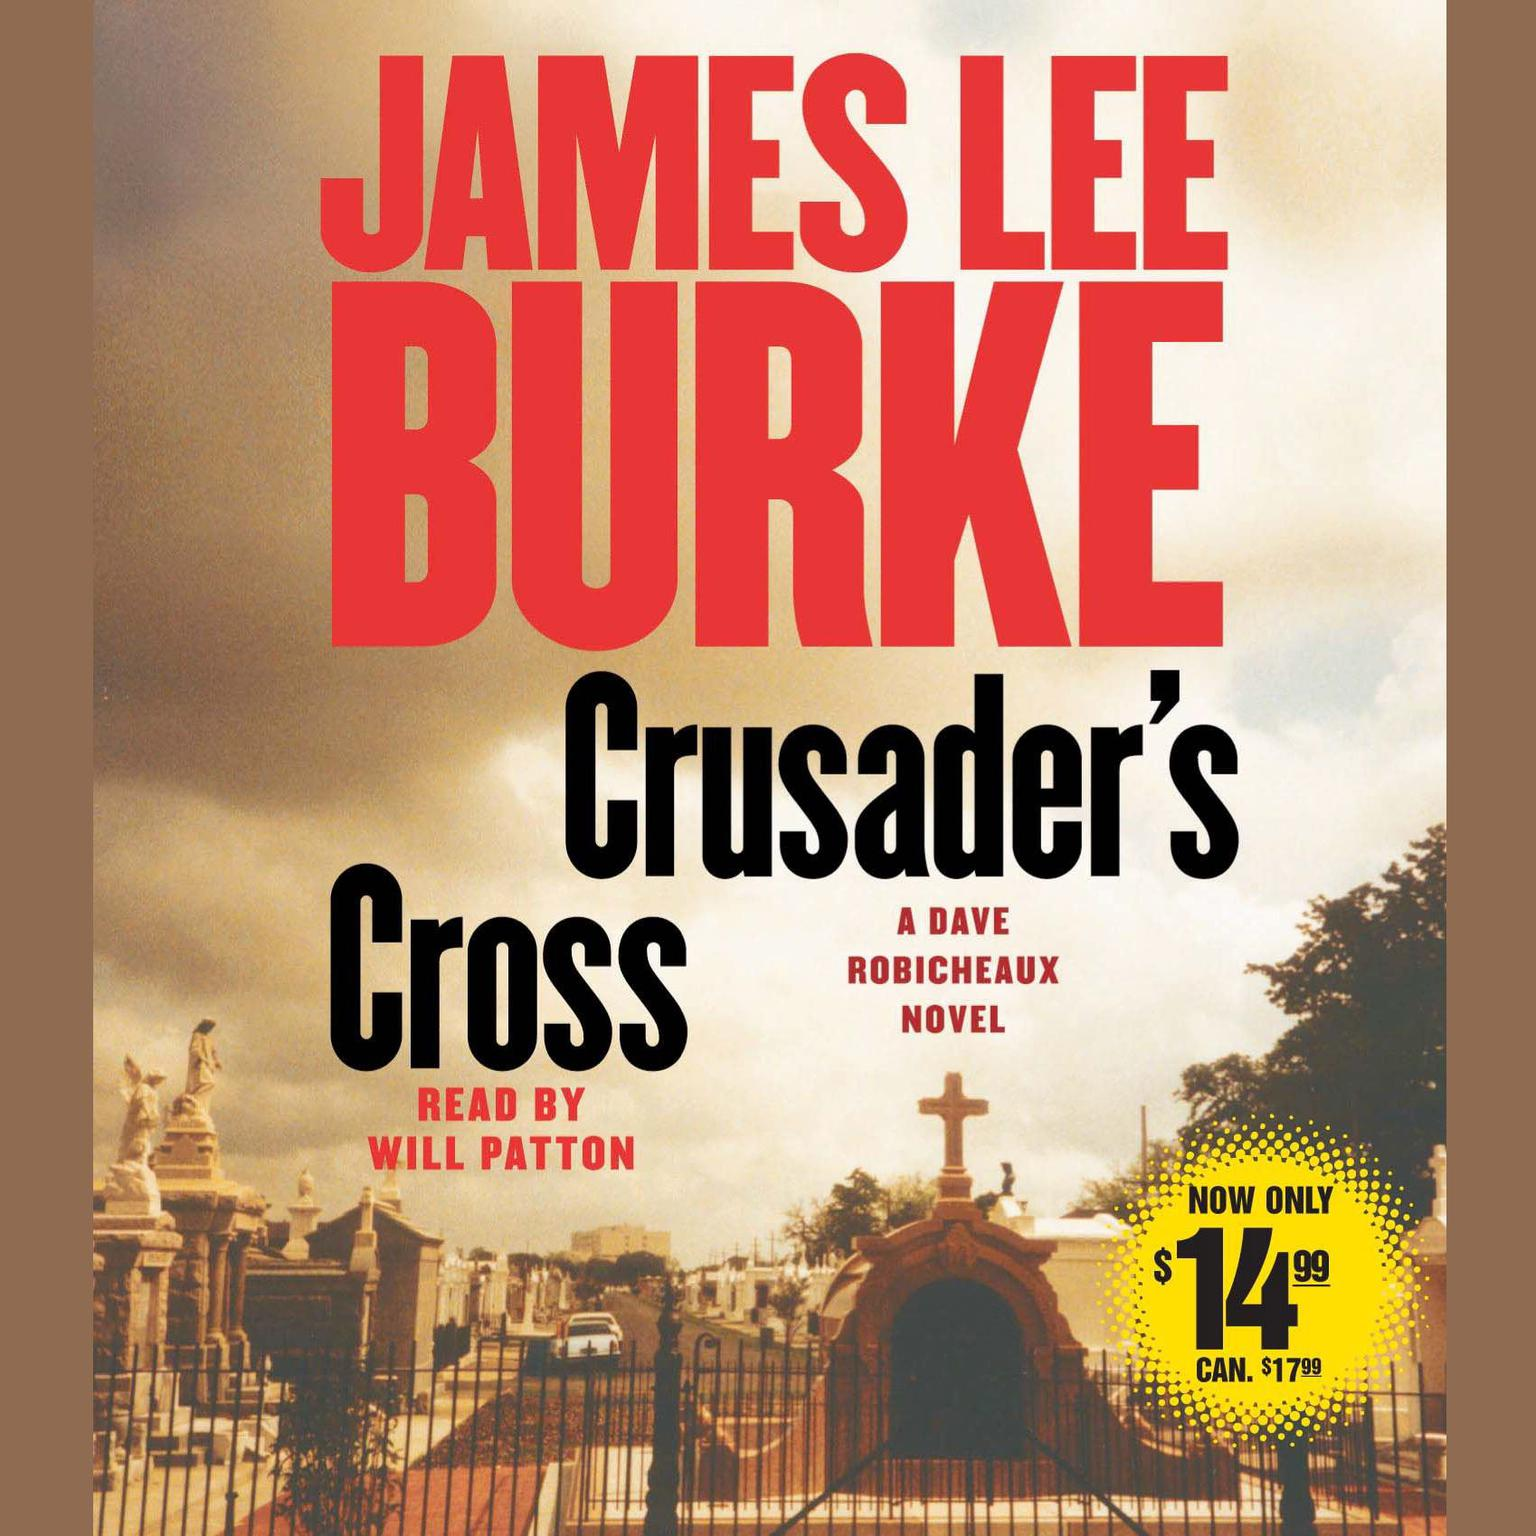 Printable Crusader's Cross (Abridged): A Dave Robicheaux Novel Audiobook Cover Art